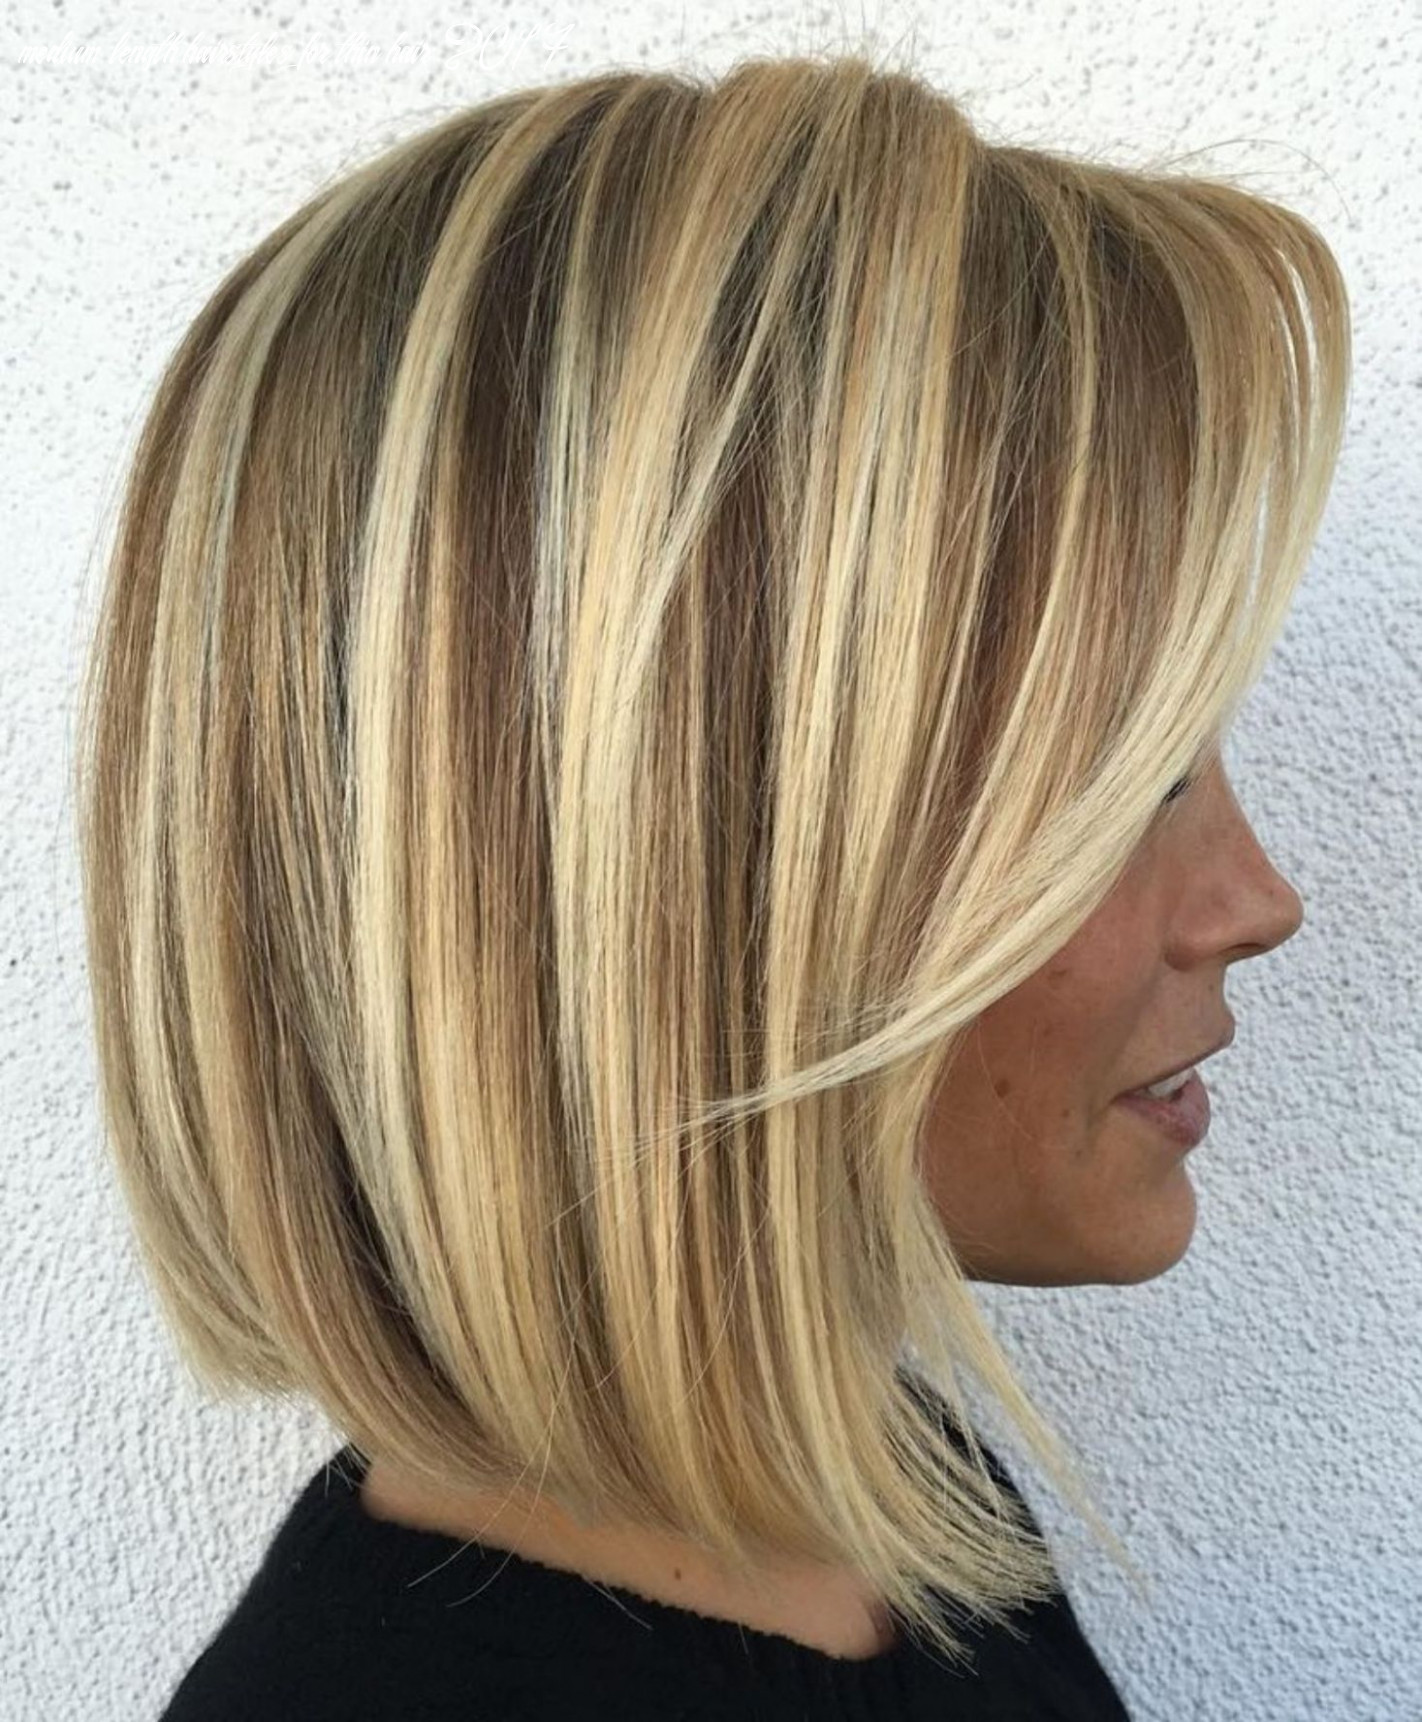 10 perfect medium length hairstyles for thin hair in 10